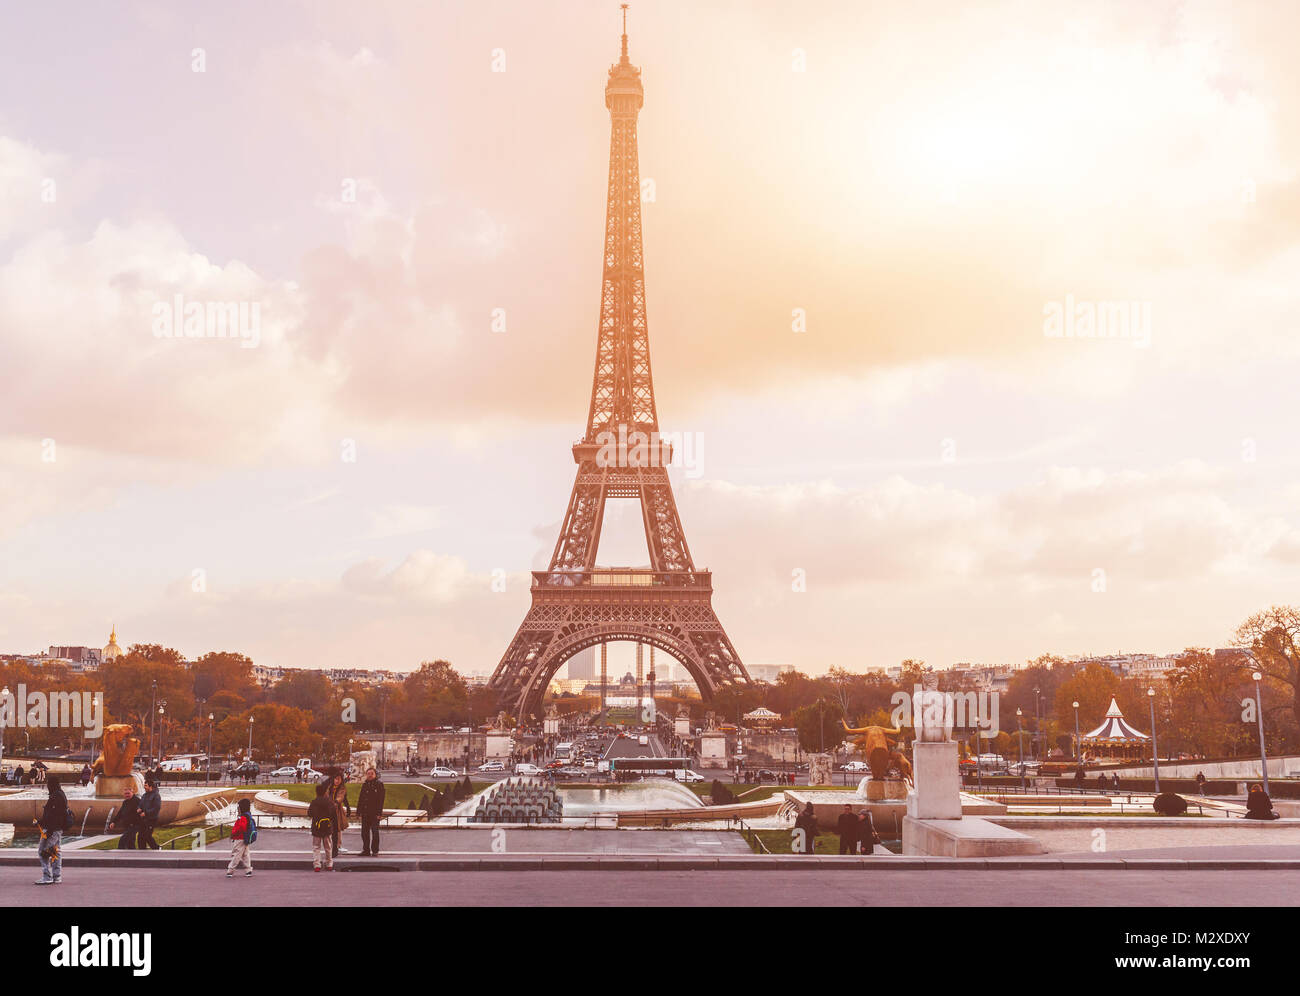 sch ne aussicht auf den eiffelturm in paris frankreich ber hmte sehensw rdigkeiten in europa. Black Bedroom Furniture Sets. Home Design Ideas